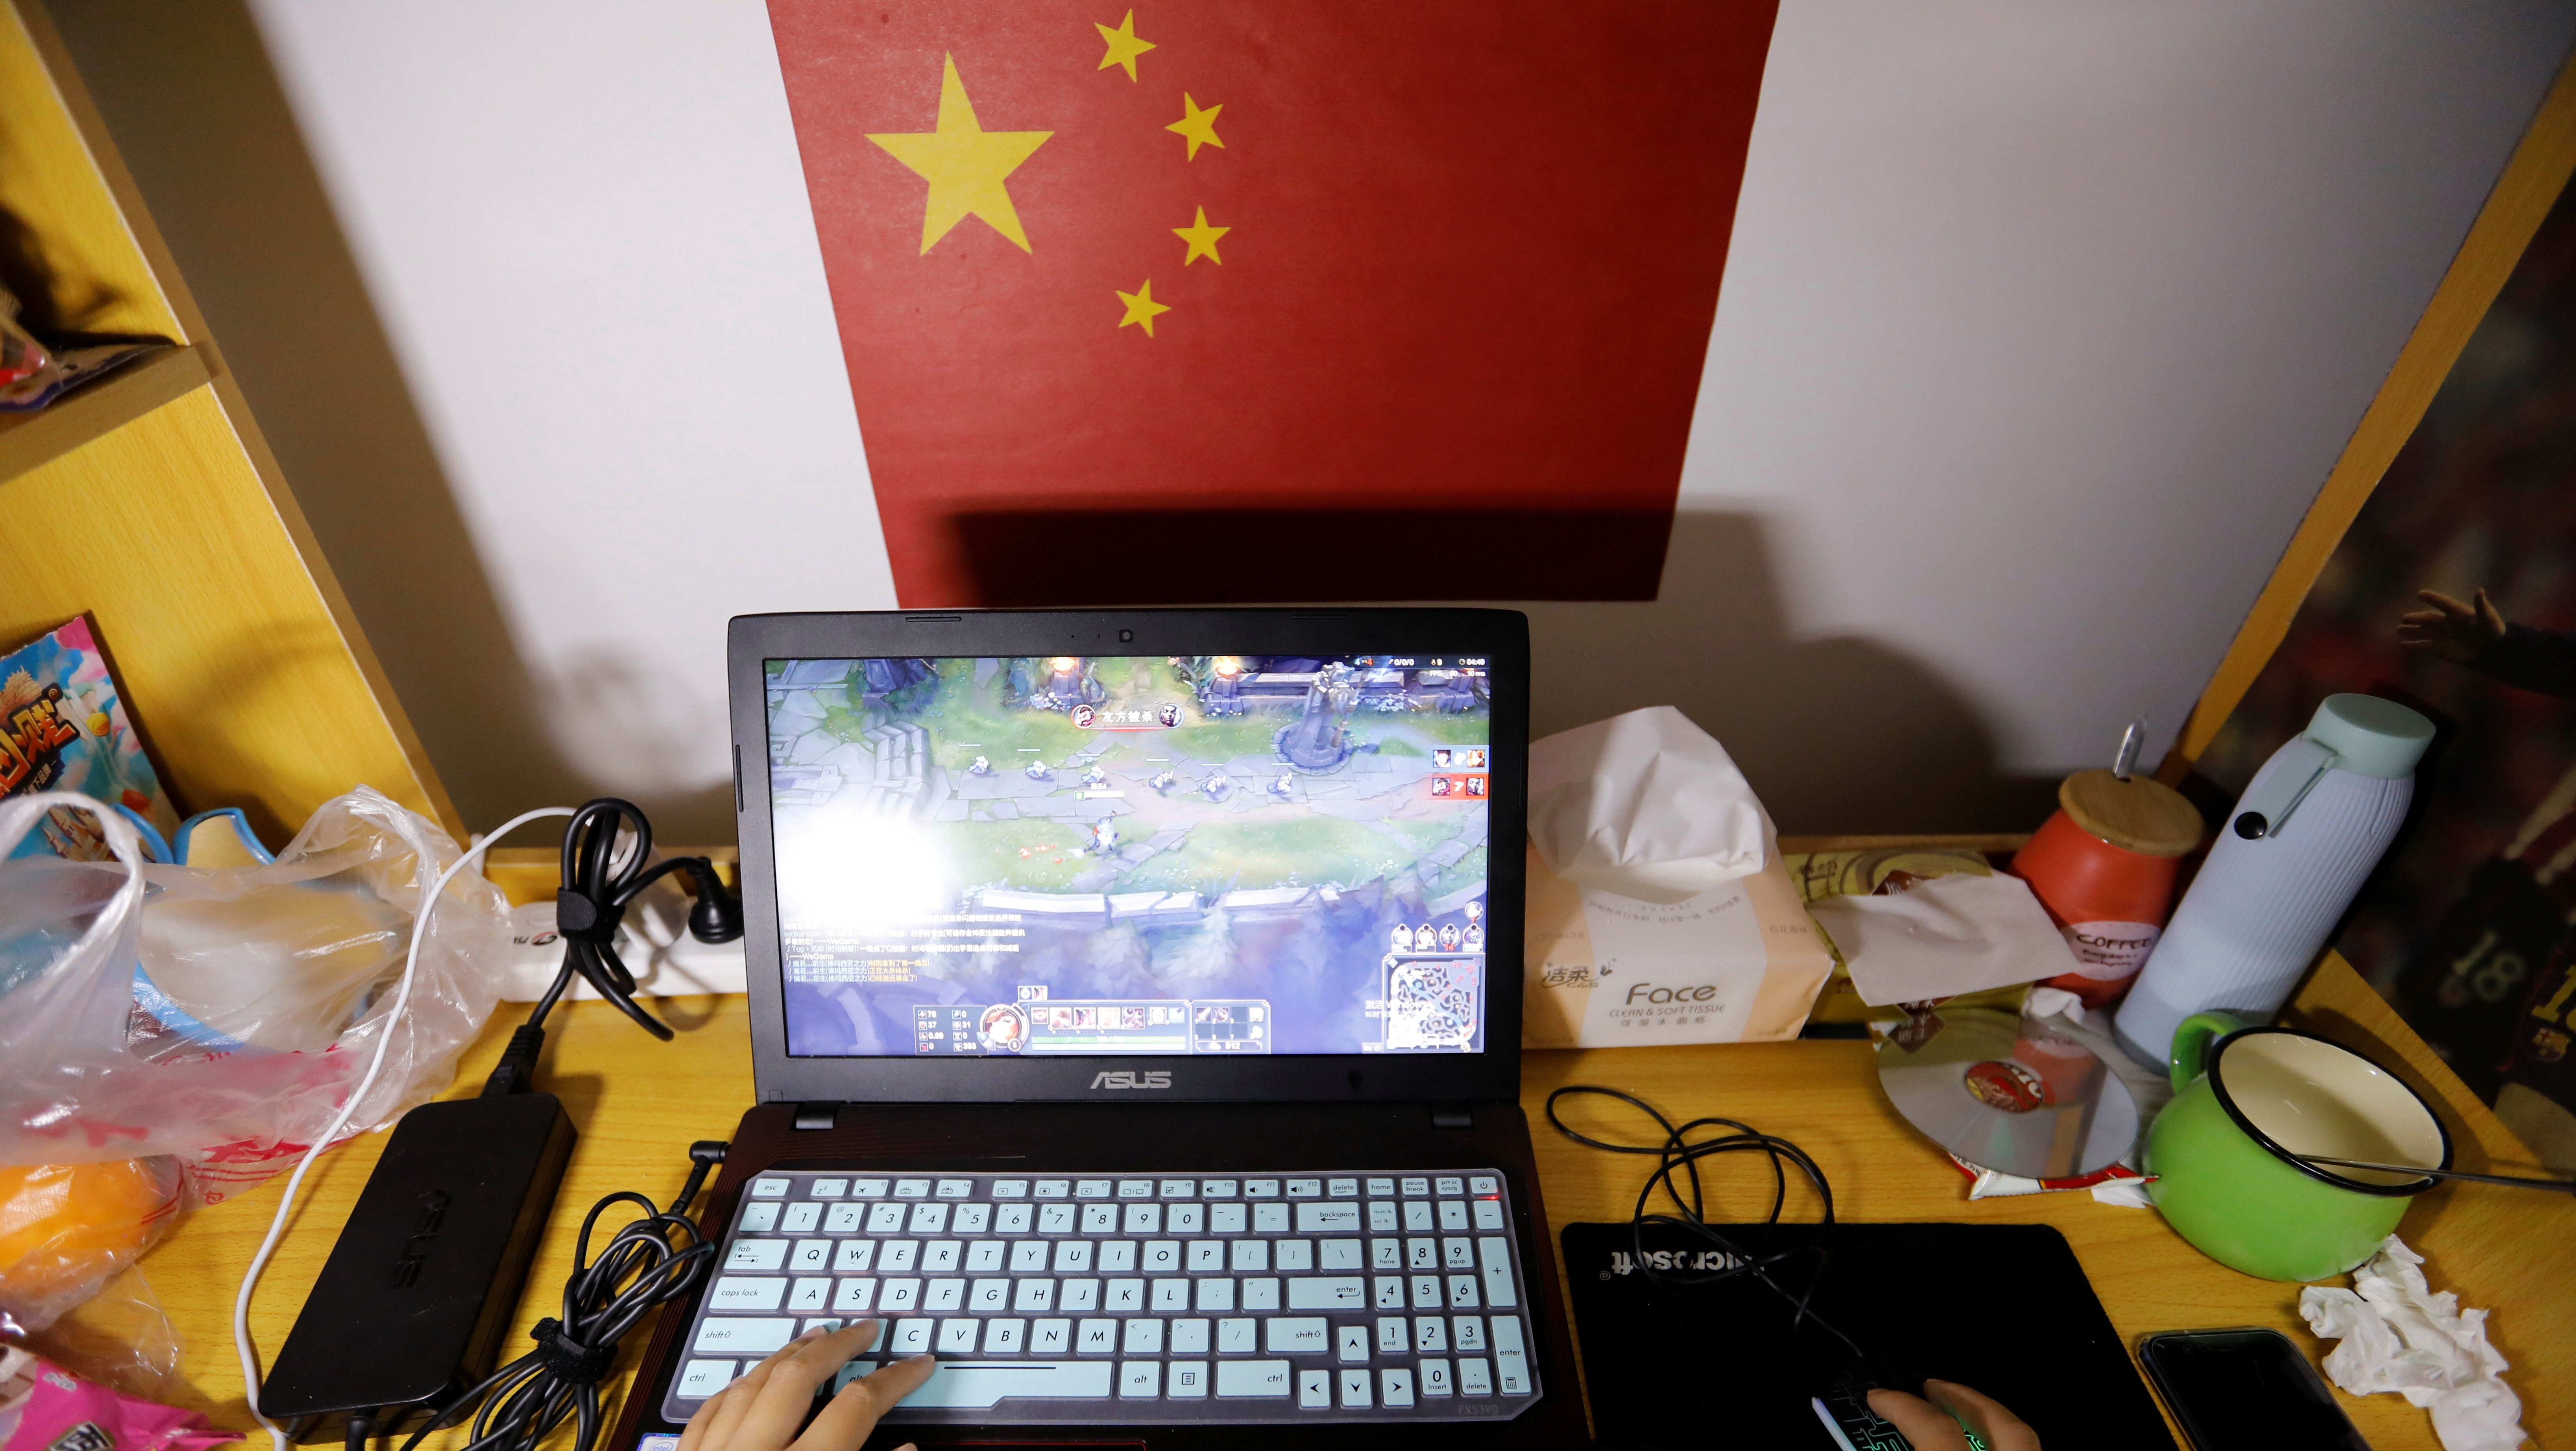 A student majoring esports and management practices on her laptop in a dormitory at the Sichuan Film and Television University in Chengdu, Sichuan province, China, November 19, 2017. The curriculum of the course is designed to prepare students for jobs in the growing industry that supports professional esports players who reach the peek of their career in their teenage years. The students study a wide range of subjects from commentating and script writing to event organising and gaming strategy. Picture taken November 19, 2017.